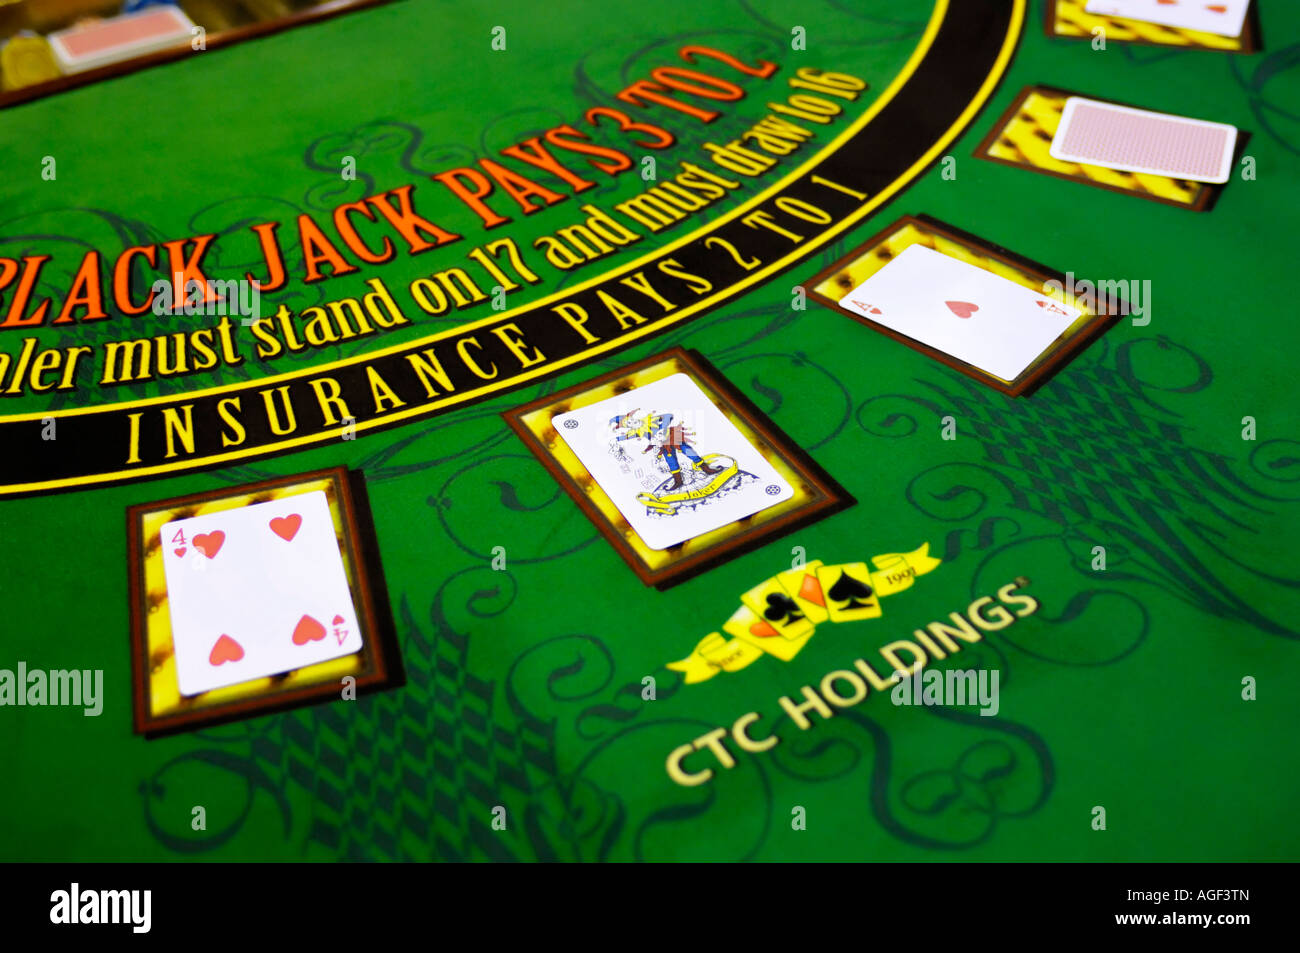 Blackjack casino tennessee online casino legal in usa